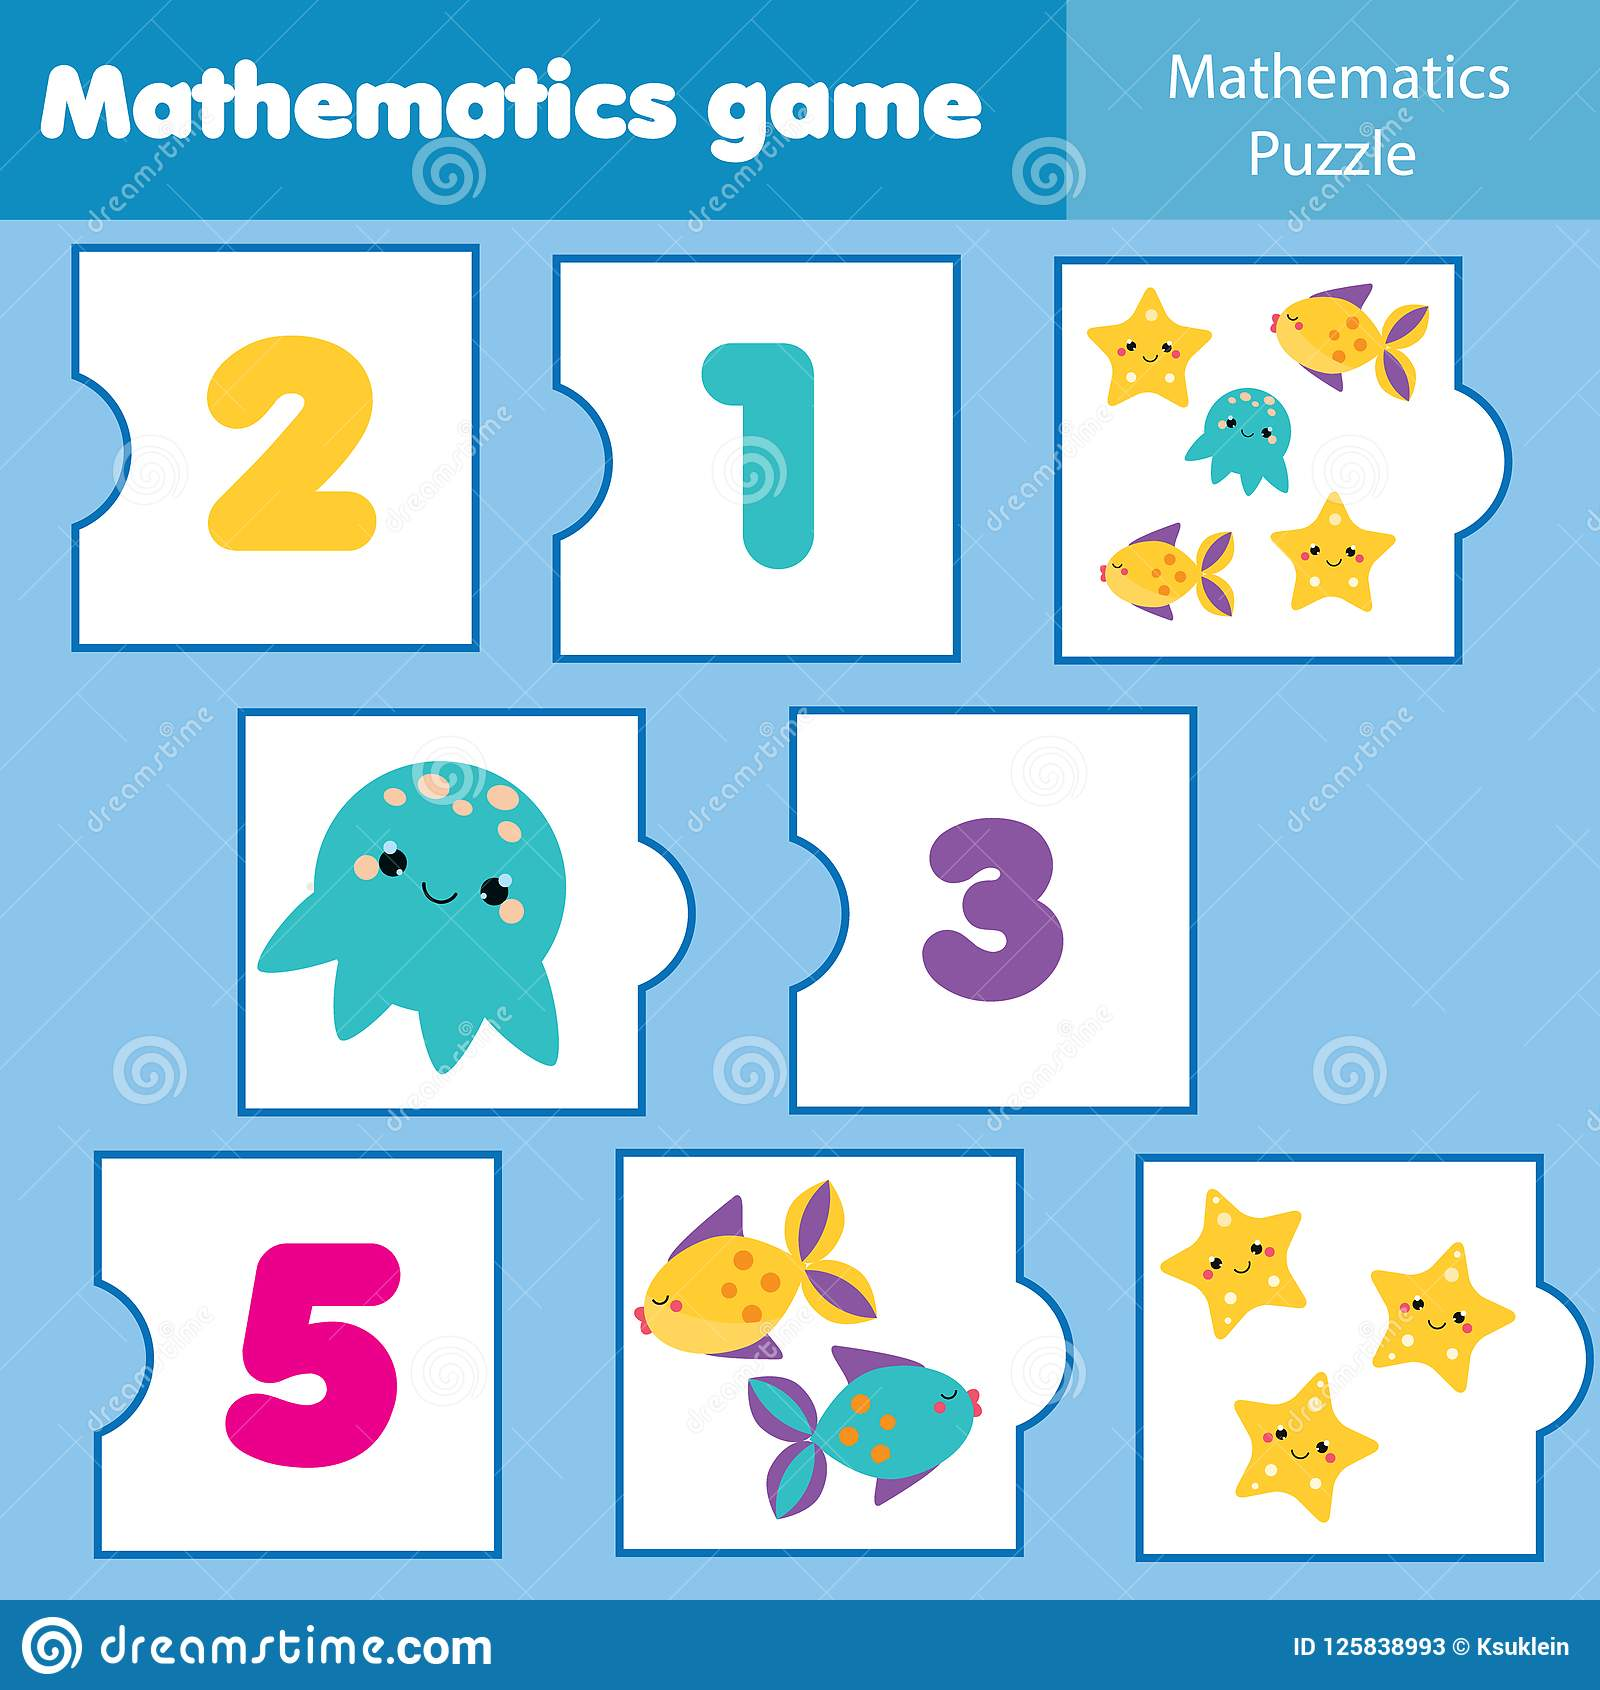 Math Educational Game For Children Matching Mathematics Puzzles Counting Game For Kids And